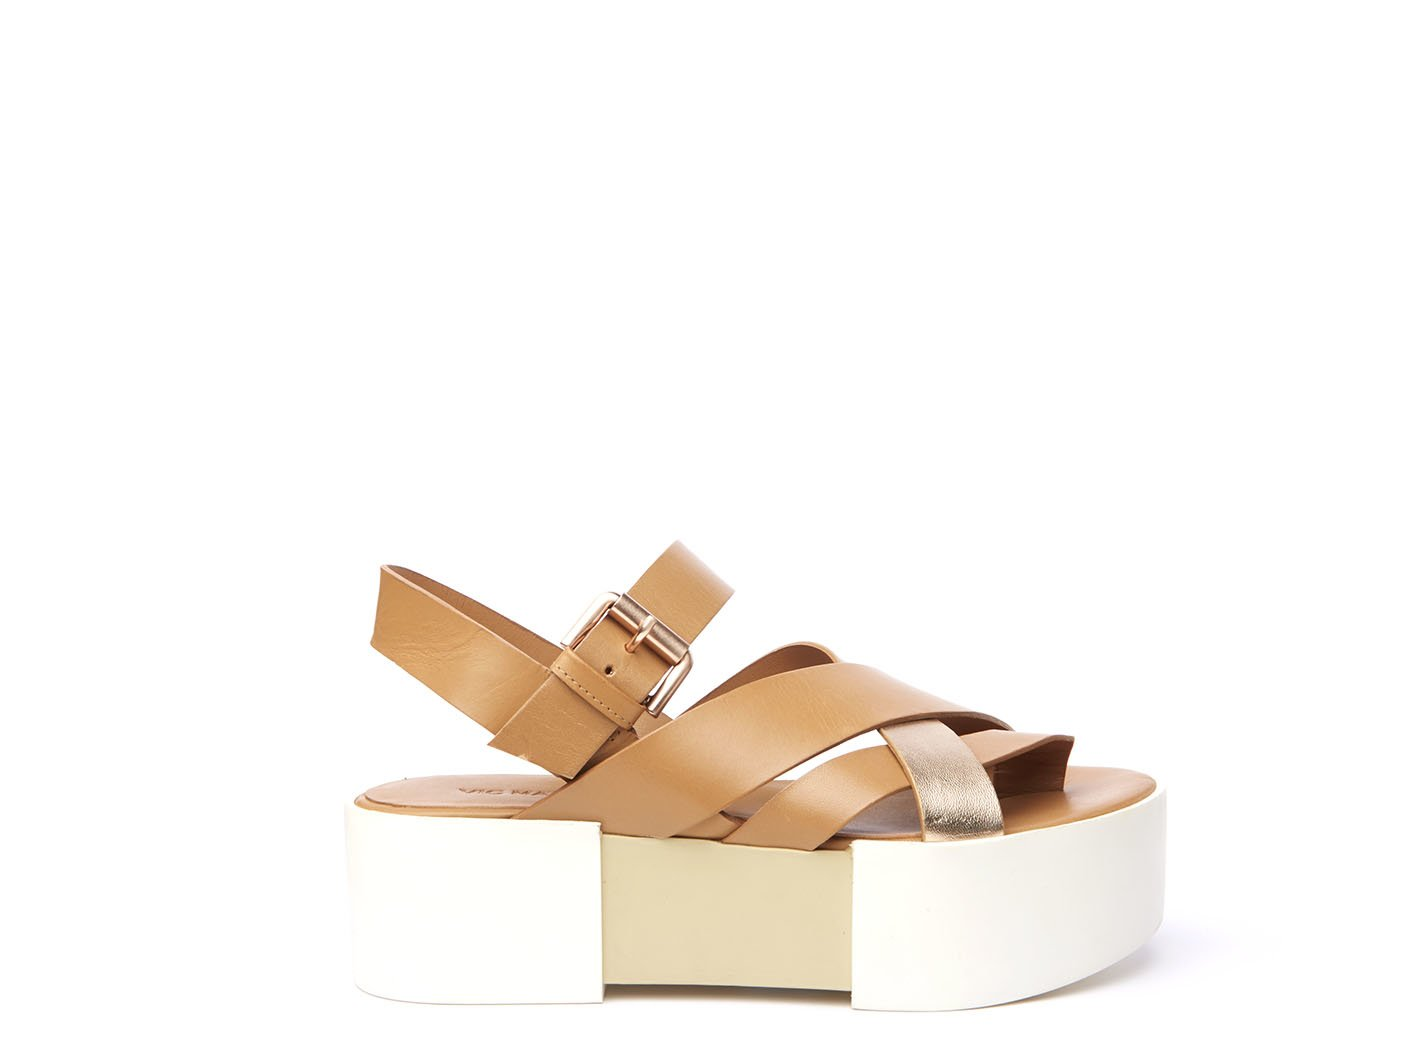 Sandal with braided leather bands